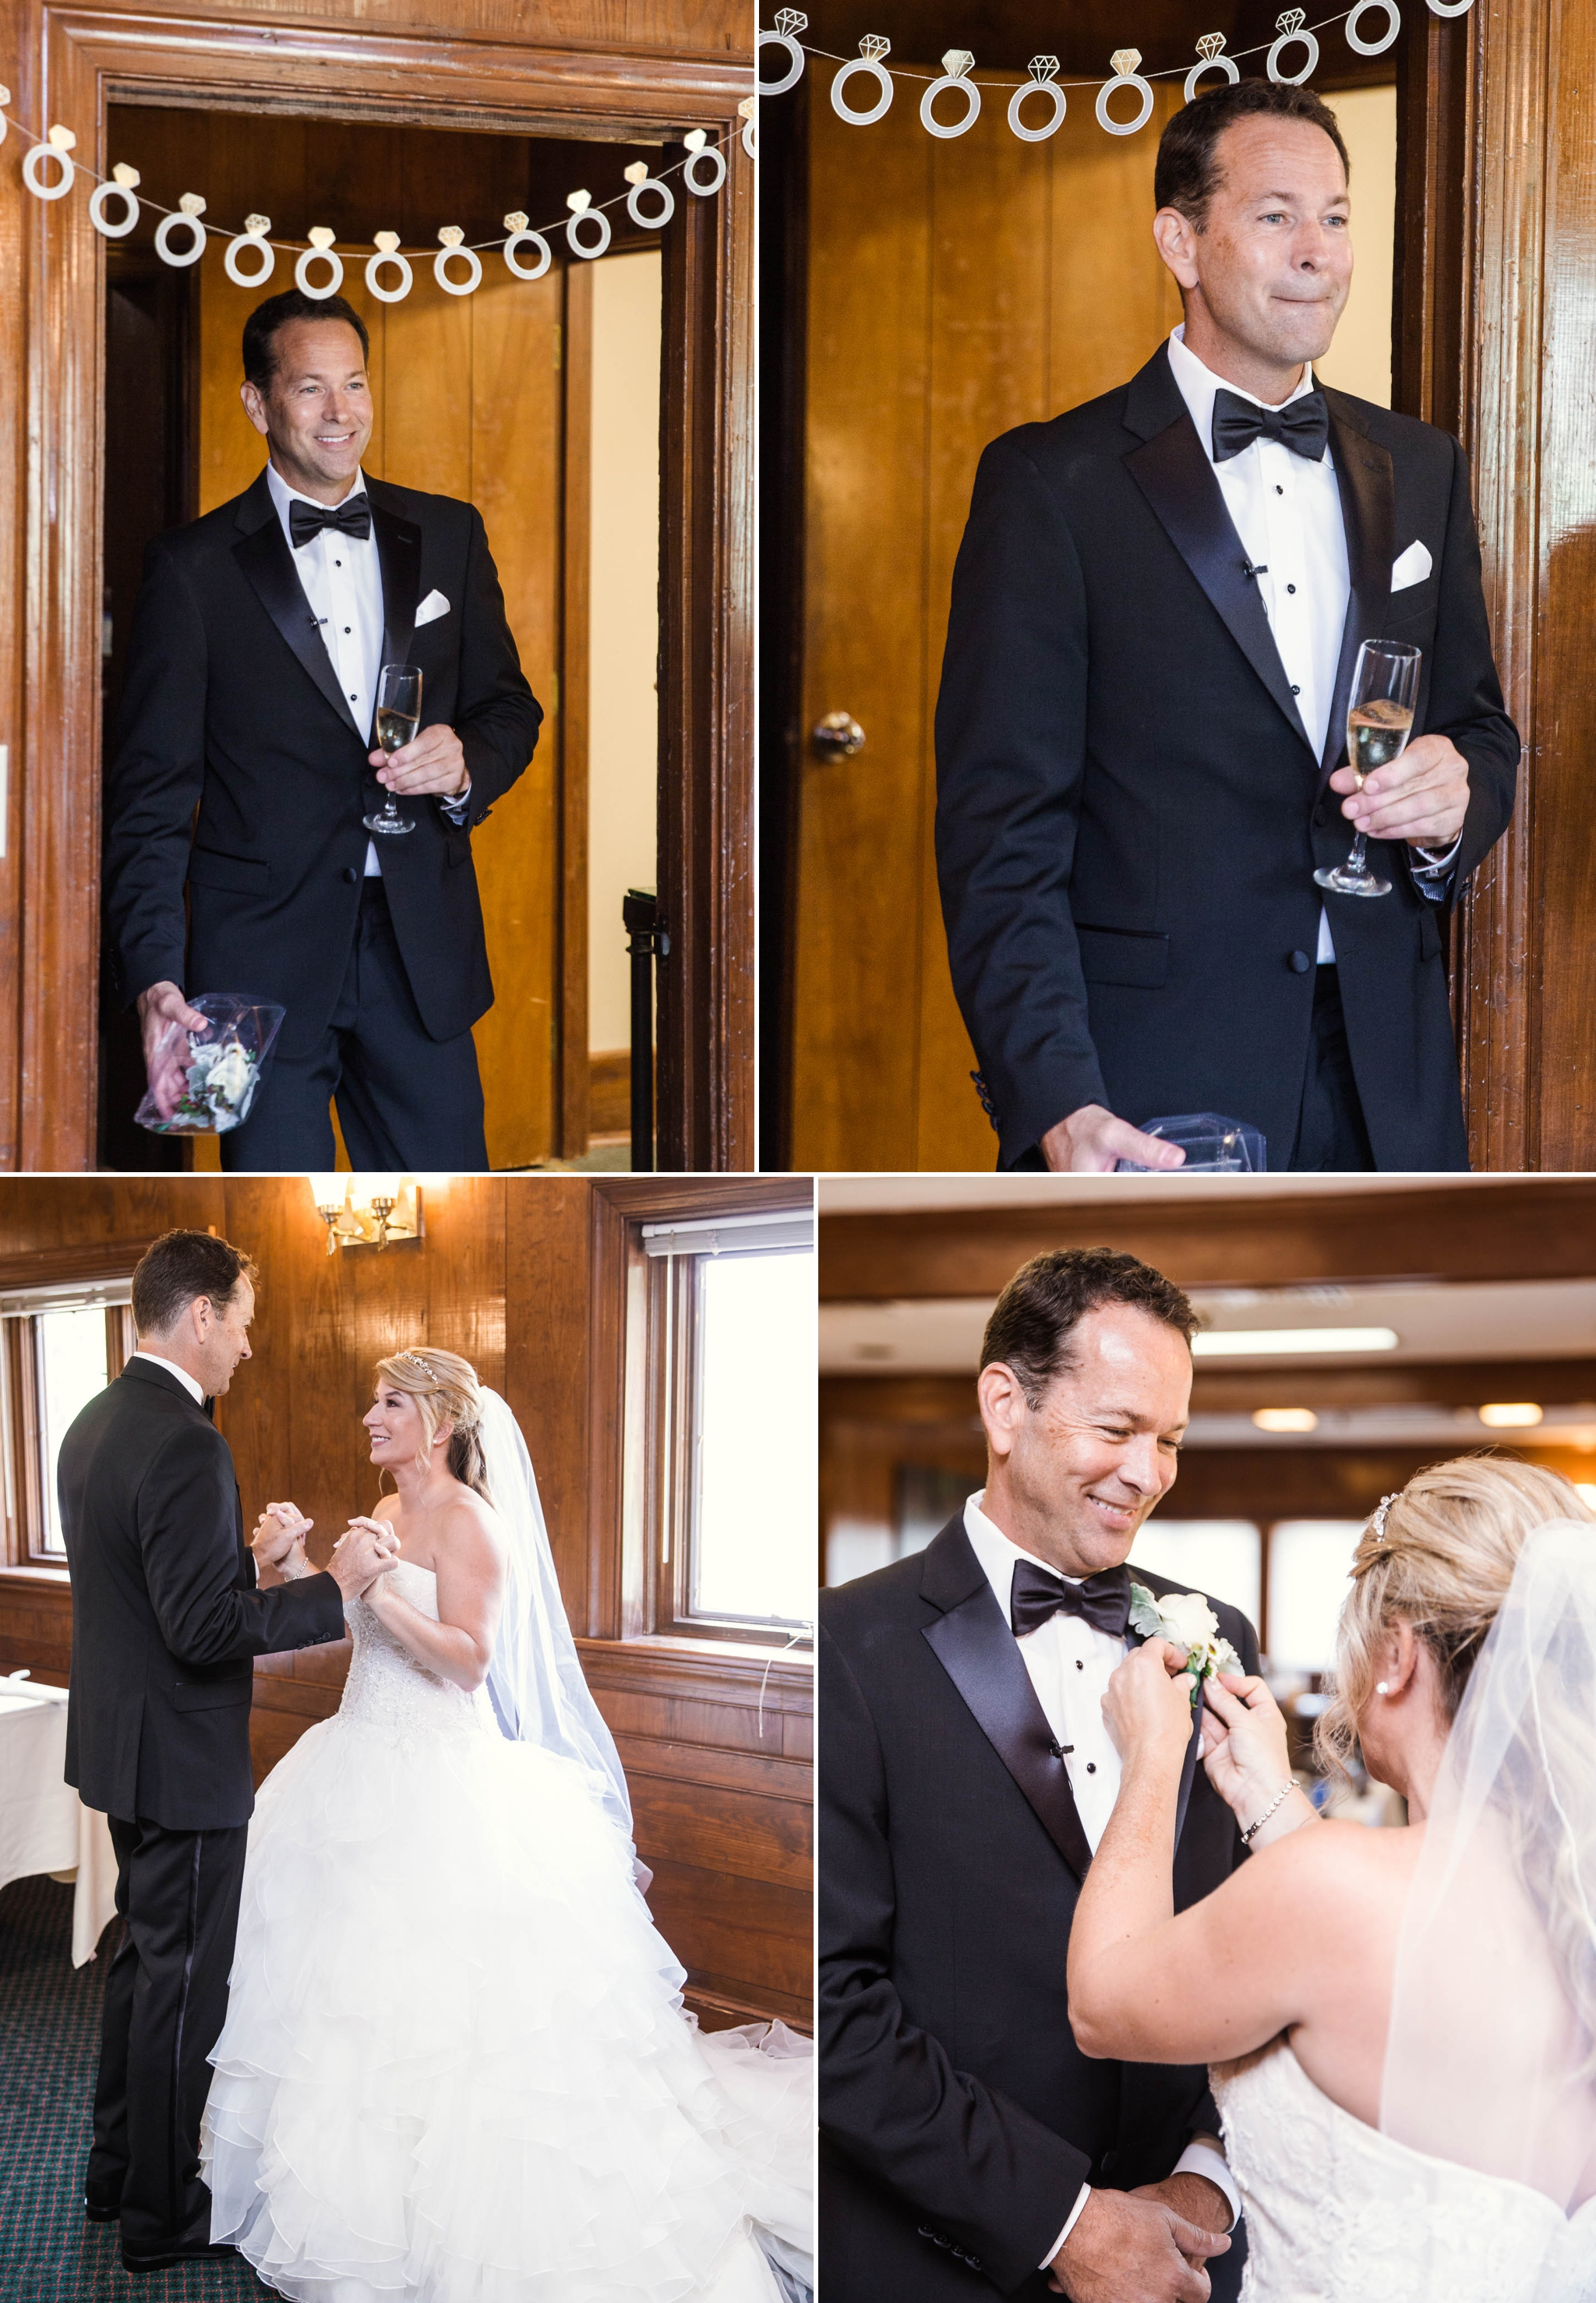 Groom seeing the bride for the first time - Dona + Doug - MacGregor Downs Country Club in Cary, NC - Raleigh Wedding Photographer